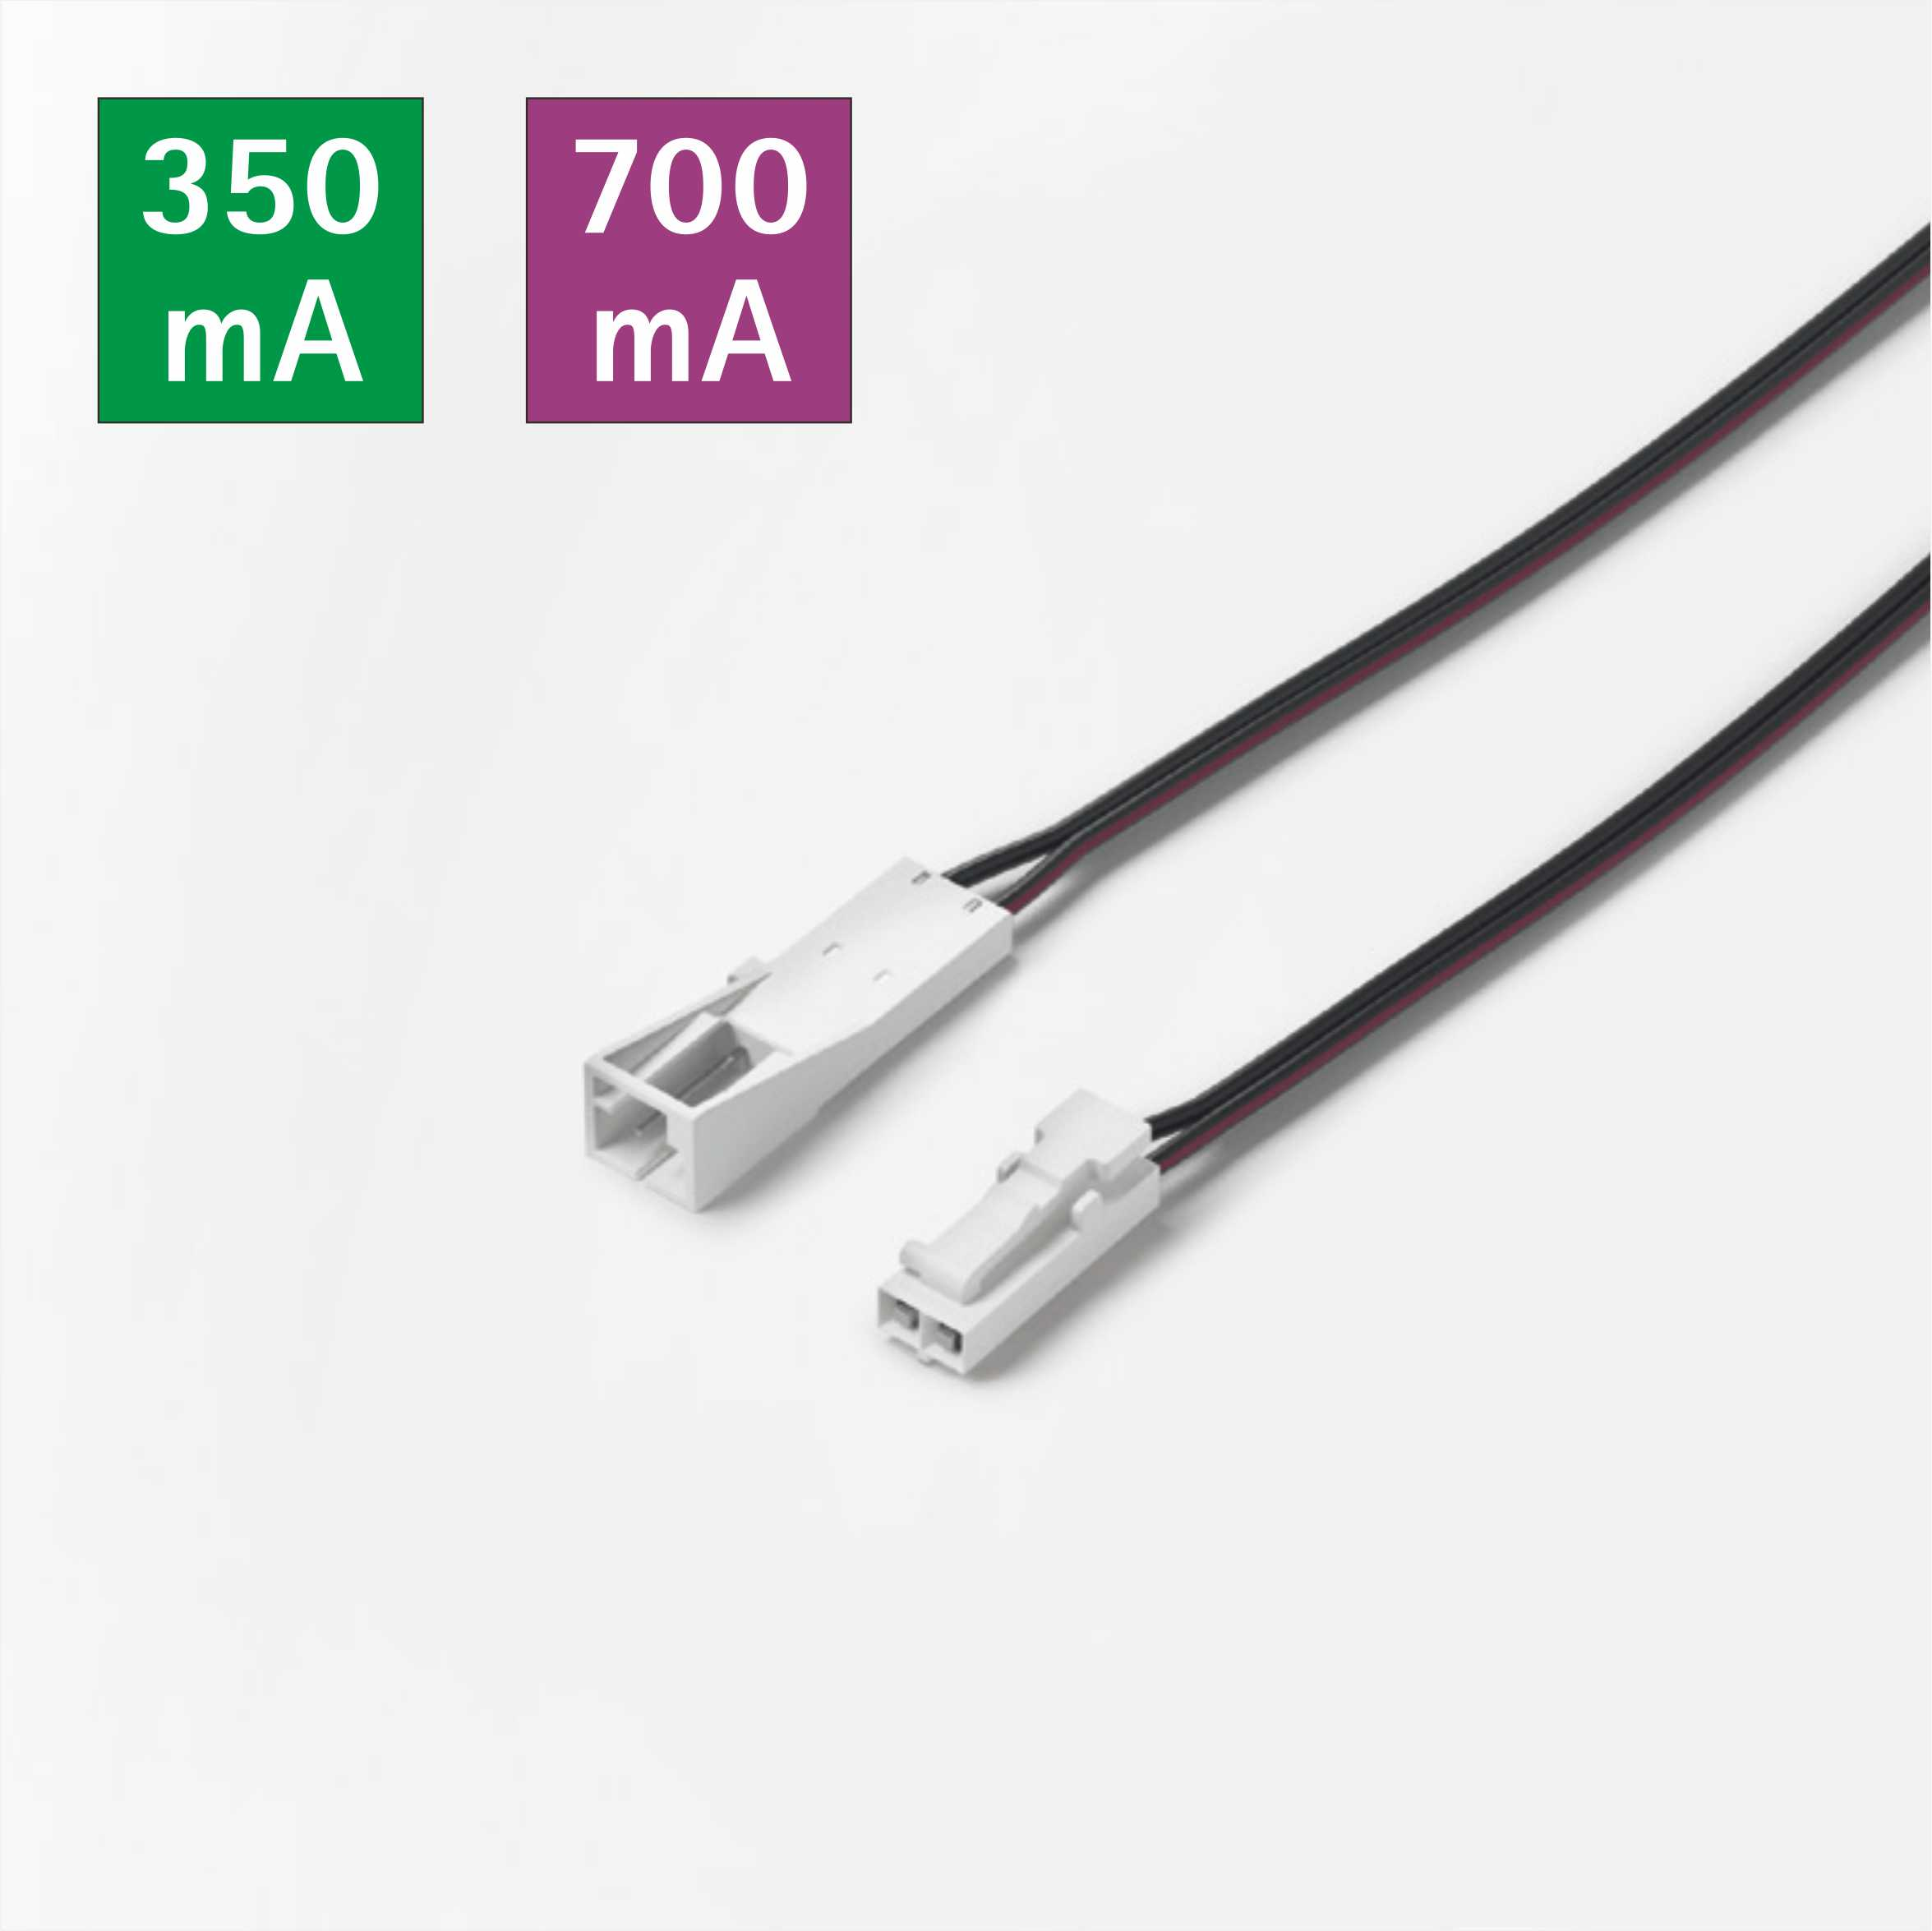 Male-Female Dupont Housing 1800mm Connecting Cable For Constant Current Lightings 9535.181